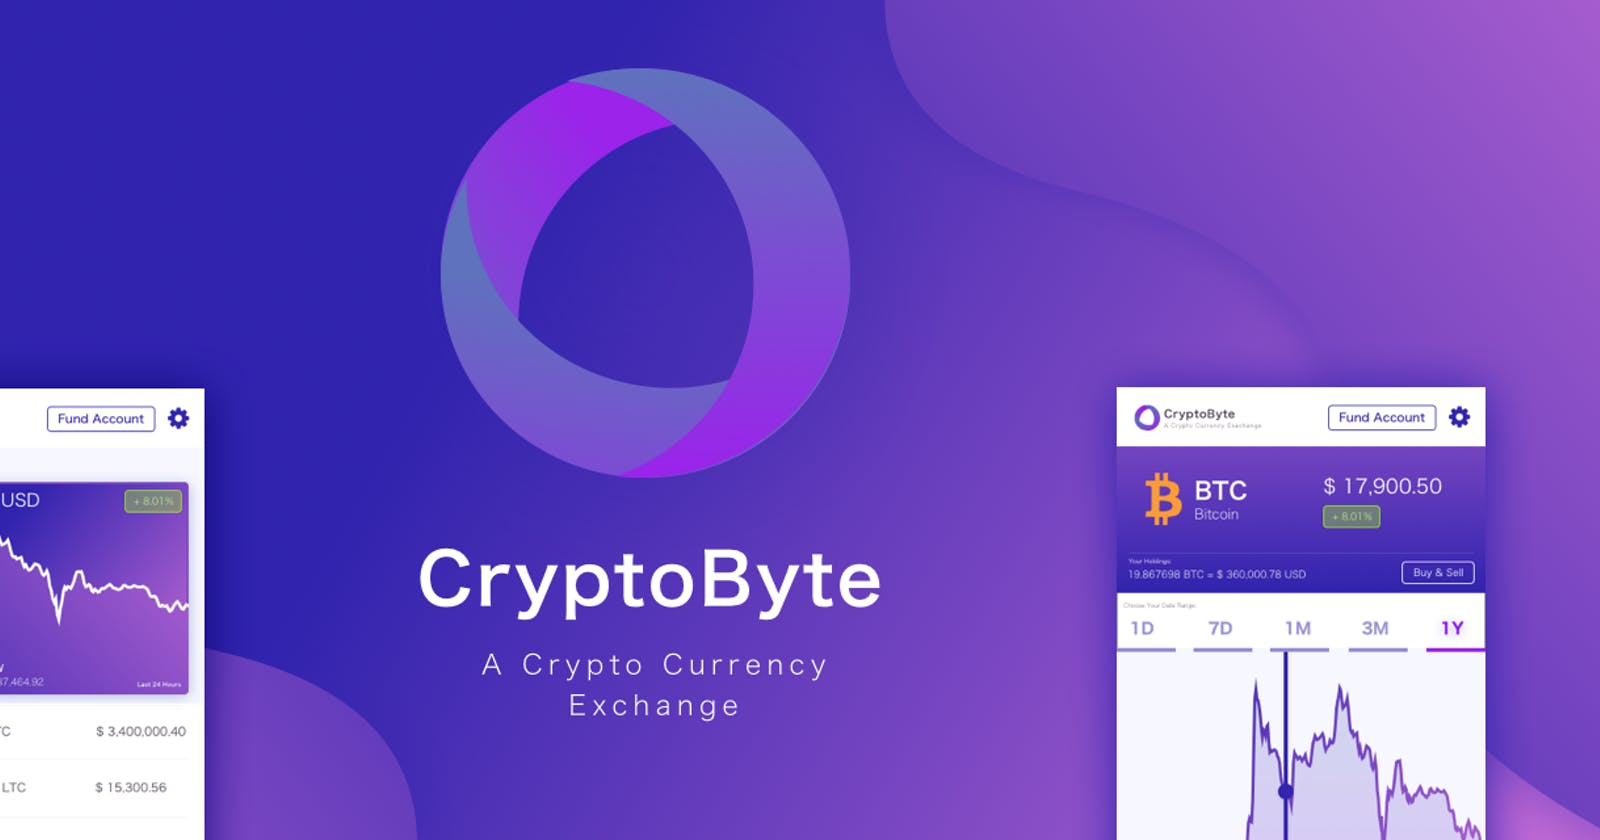 Case Study: Designing the brand and app for CryptoByte